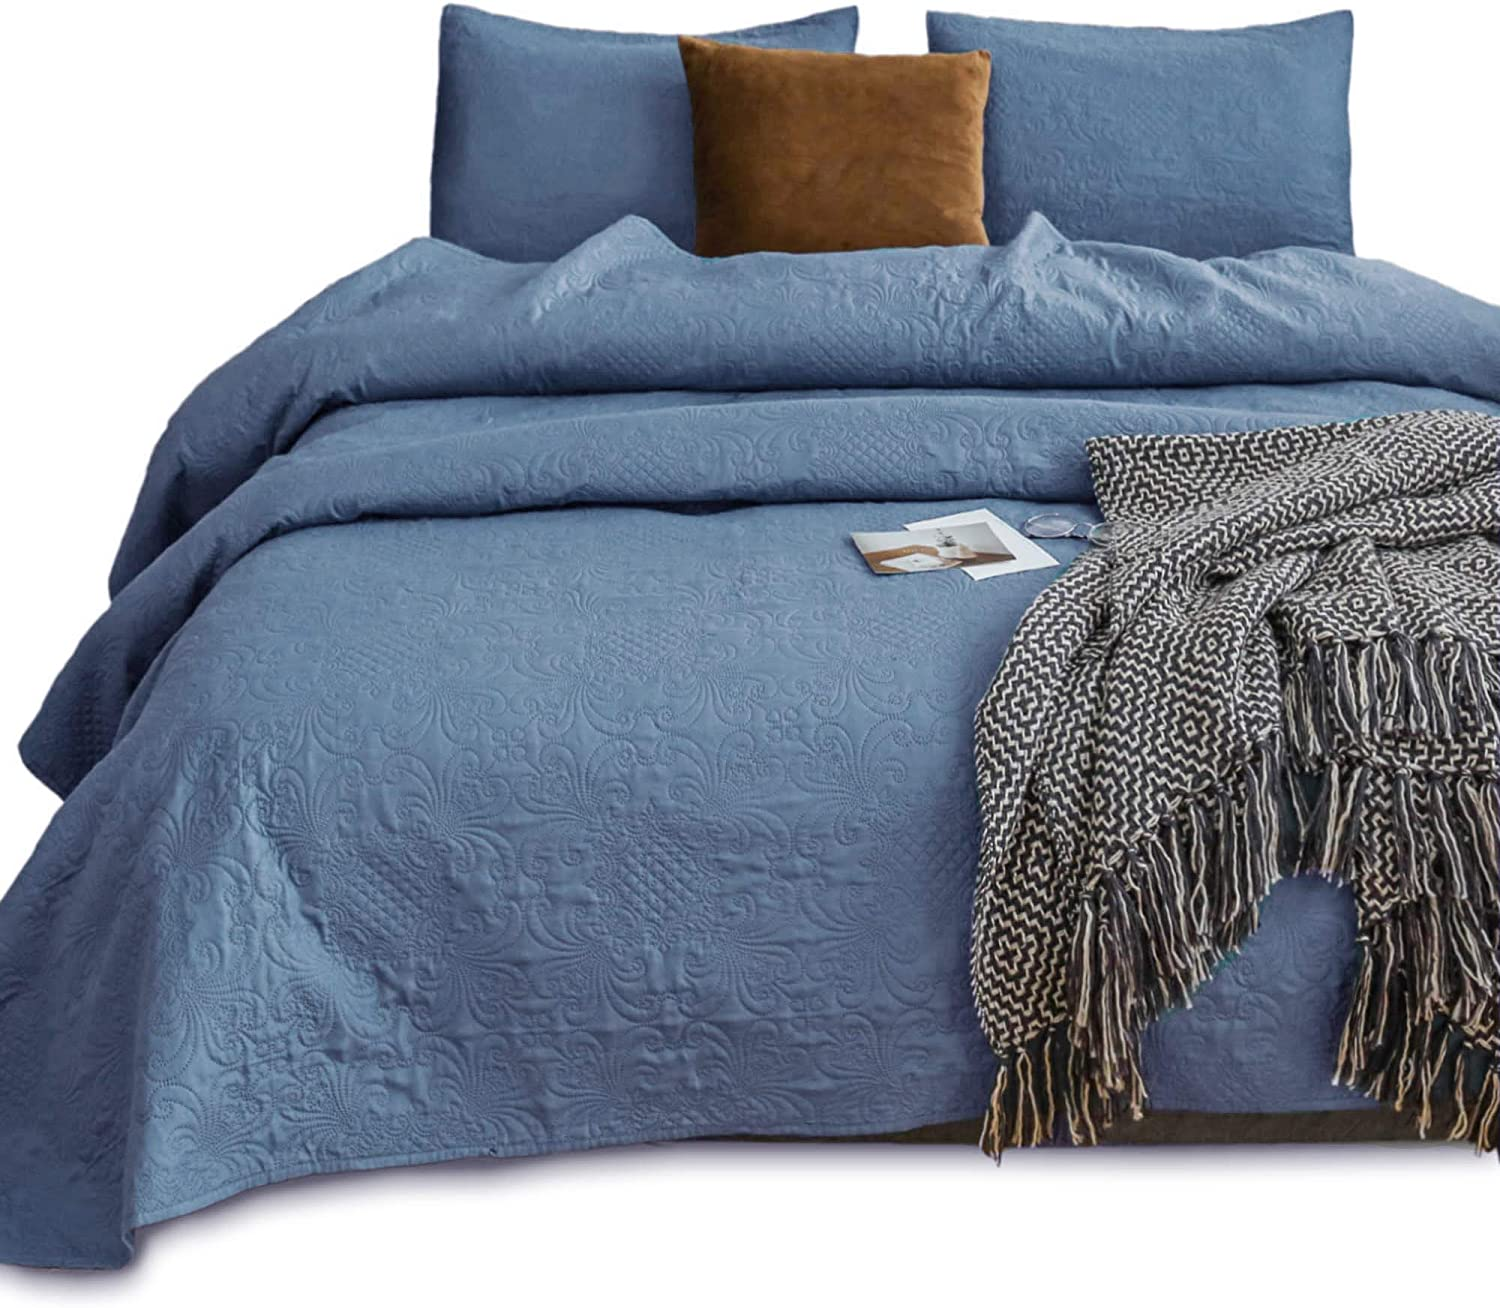 Max 76% OFF Outlet sale feature KASENTEX Coverlet Quilt Set-Pre Wa Soft Washed-Luxury Microfiber